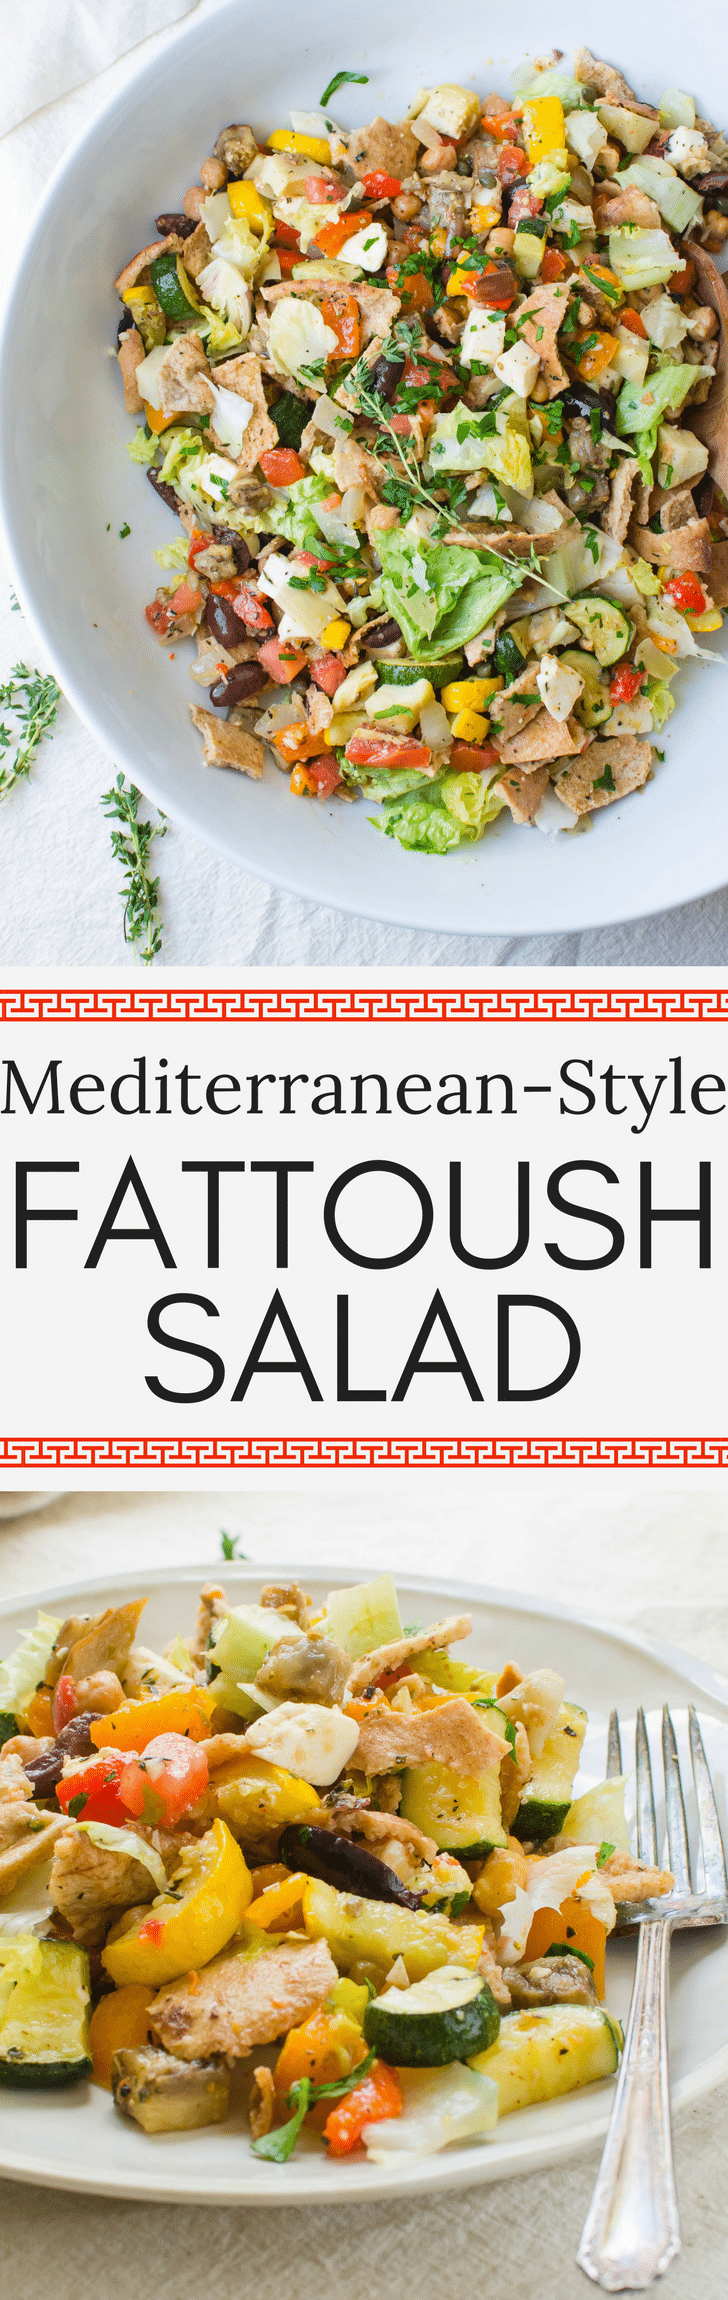 Inspired by Lebanese fattoush this inauthentic, but delicious Mediterranean-Style Fattoush Salad recipe has the best way to cook eggplant. Learn how to make fattoush as a great vegetarian or vegan main dish or fresh side dish to grilled foods. #fattoush #fattoushsalad #pitabread #pitasalad #panzanella #zucchini #eggplant #howtoroastvegetables #howtocookeggplant #fattoushsaladrecipe #breadsaladrecipe #roastedvegetables #fennel #homemadedressing #homemadevinaigrette #lemonvinaigrette #lemonherbdressing #vegetarian #vegan #zucchini #peppers #chickpeas #garbanzobeans